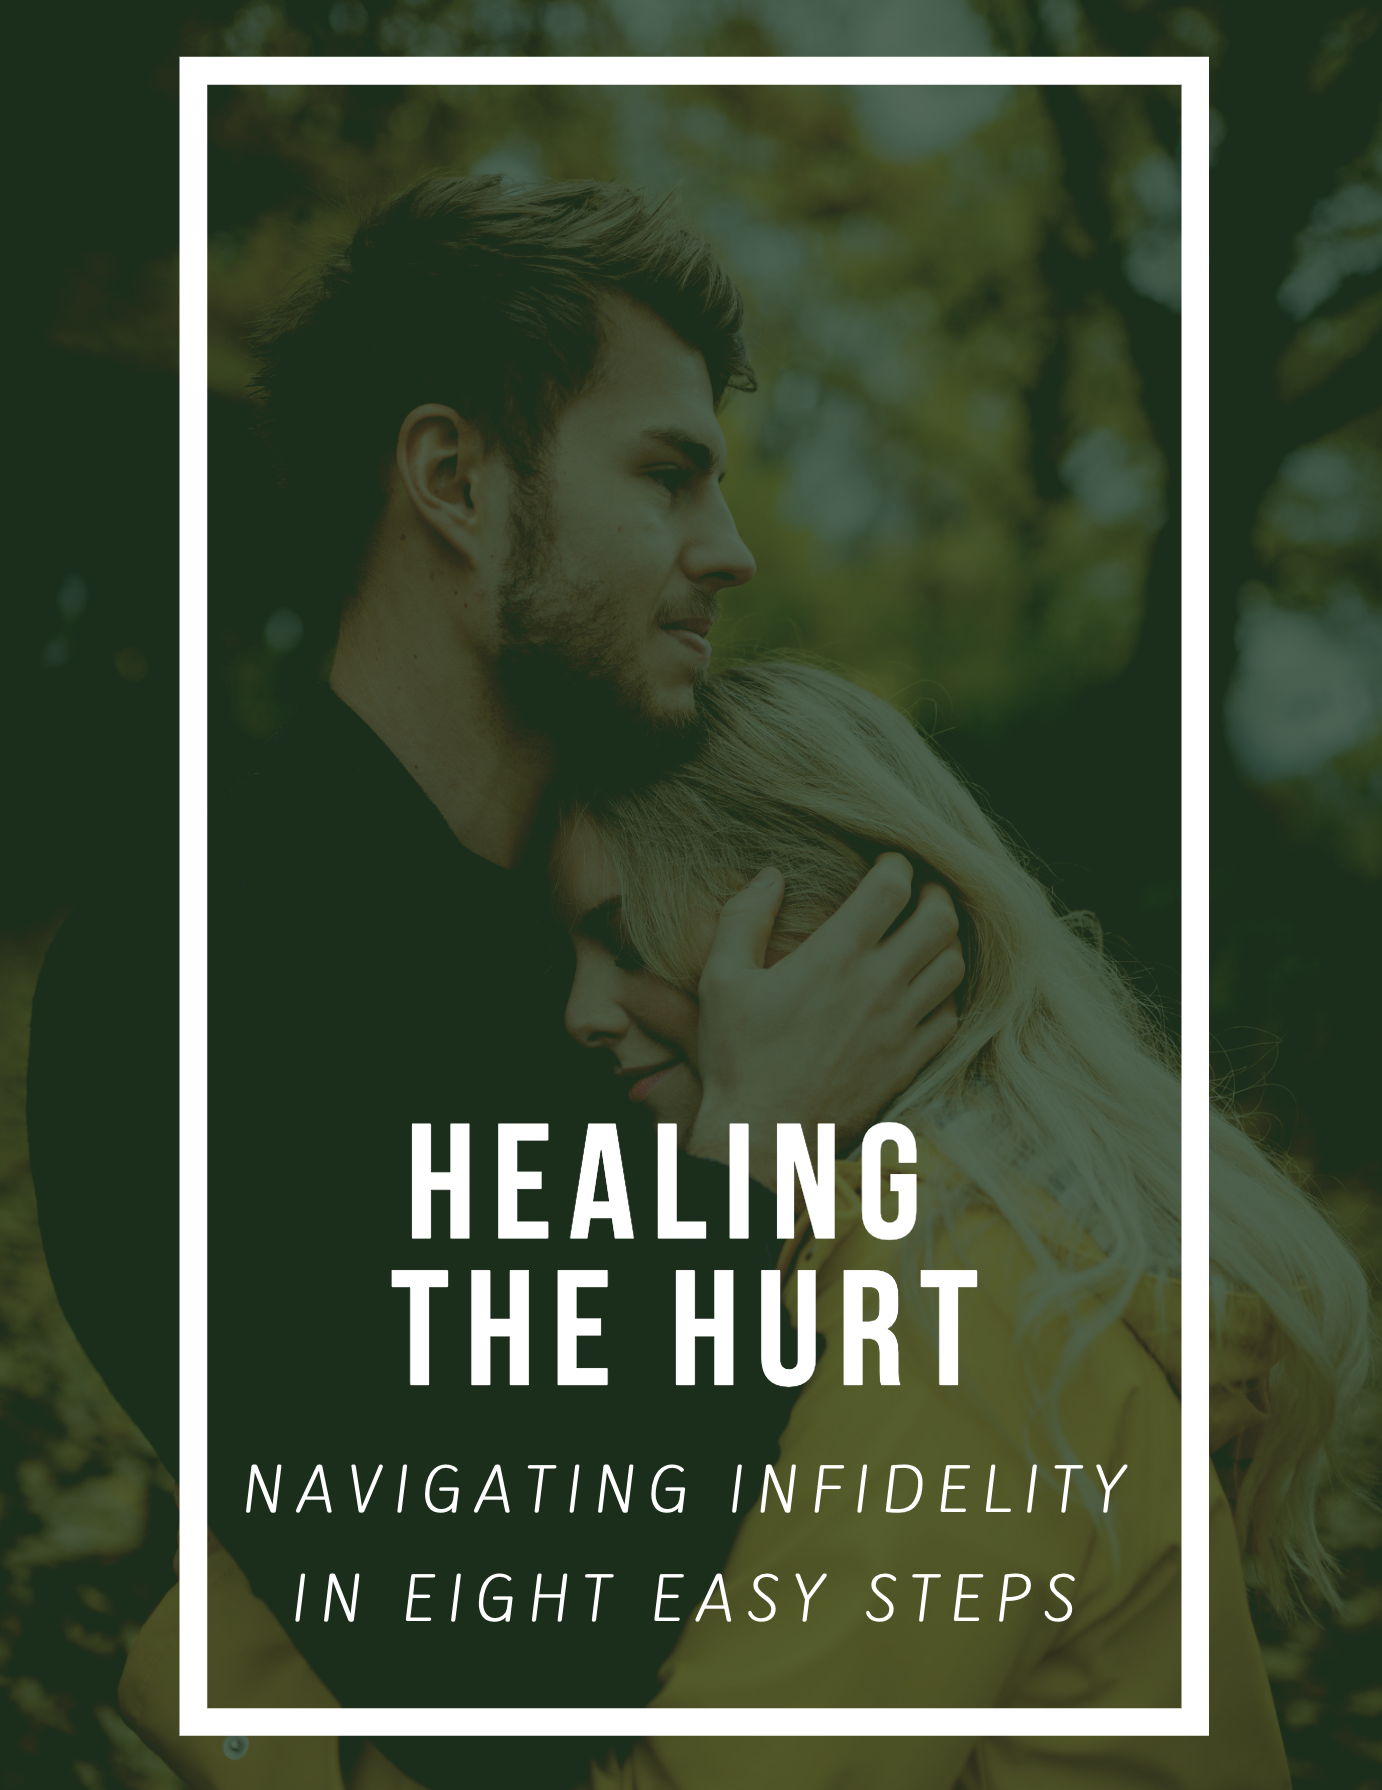 Healing the Hurt e-book - Navigate infidelity in eight, easy steps. Journey along with a couple that has survived an intimate betrayal while learning what clear and practical steps your relationship can take. Plus worksheets to guide self-reflection and relational growth. Don't suffer any longer!